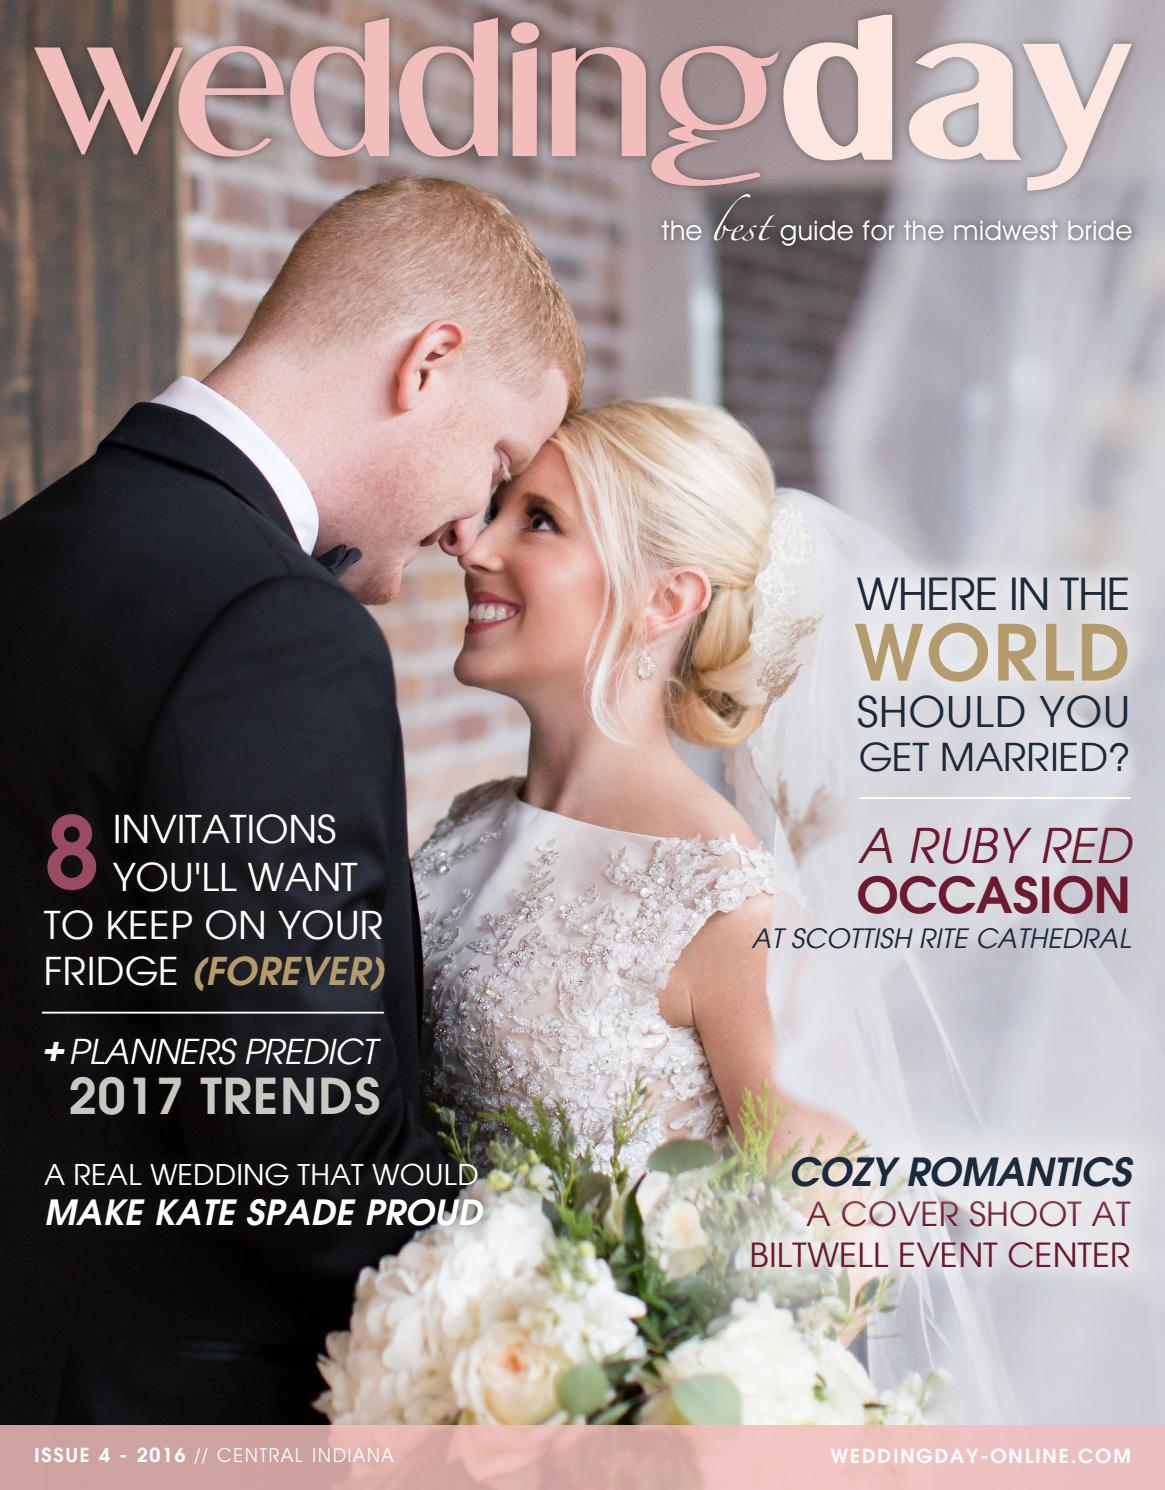 56f9304a9c1 WeddingDay Magazine - Central Indiana Issue 4 2016 by Life Events Media -  issuu